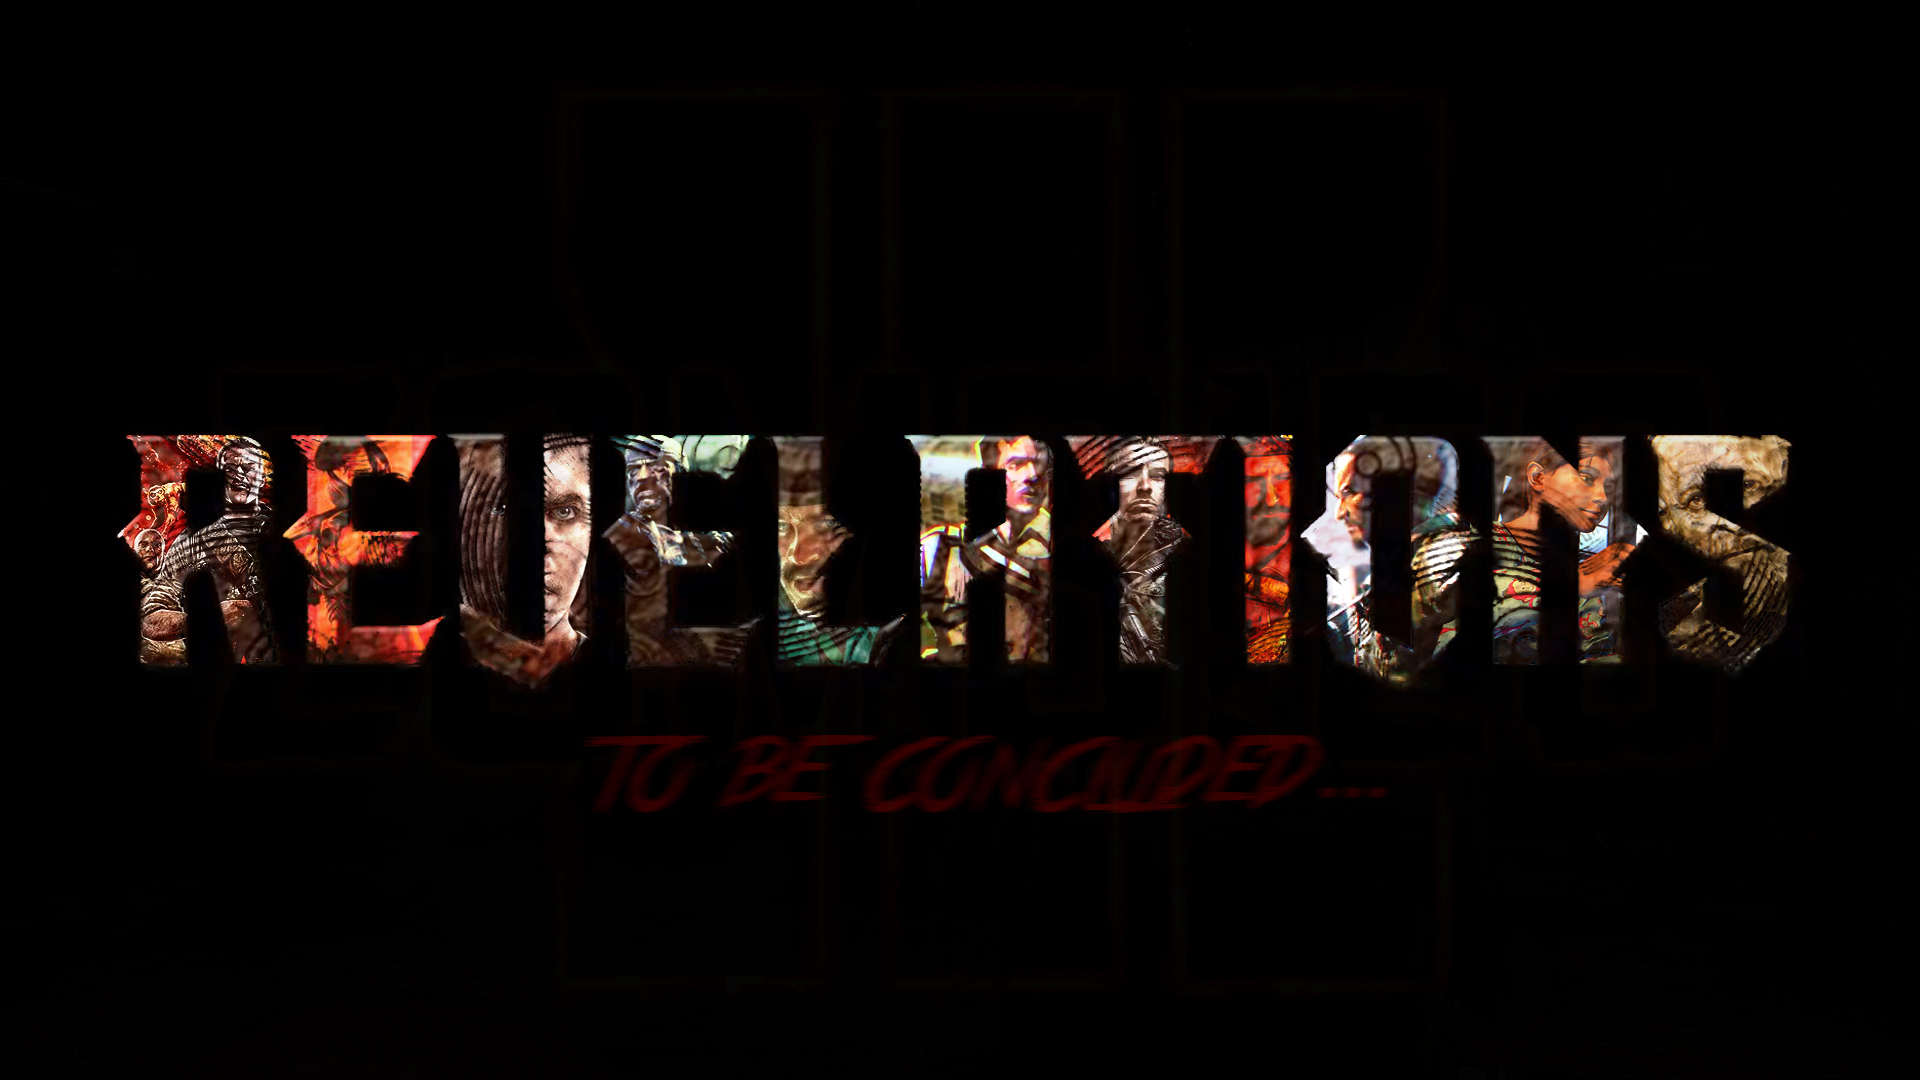 call of duty black ops dlc maps with Revelations Cod Bo3 Zombies Fanmade Wallpaper 622490353 on REVELATIONS COD BO3 ZOMBIES Fanmade Wallpaper 622490353 likewise Call Of Duty Wwii Dlc 1 The Resistance together with Black Ops 3 Awakening Dlc Will Not Be Available On Ps3 Or Xbox 360 furthermore 1302 Buy Key Steam Call Of Duty Black Ops Iii Nuketown likewise Call Duty Wwii Aachen Multiplayer Map Flythrough.